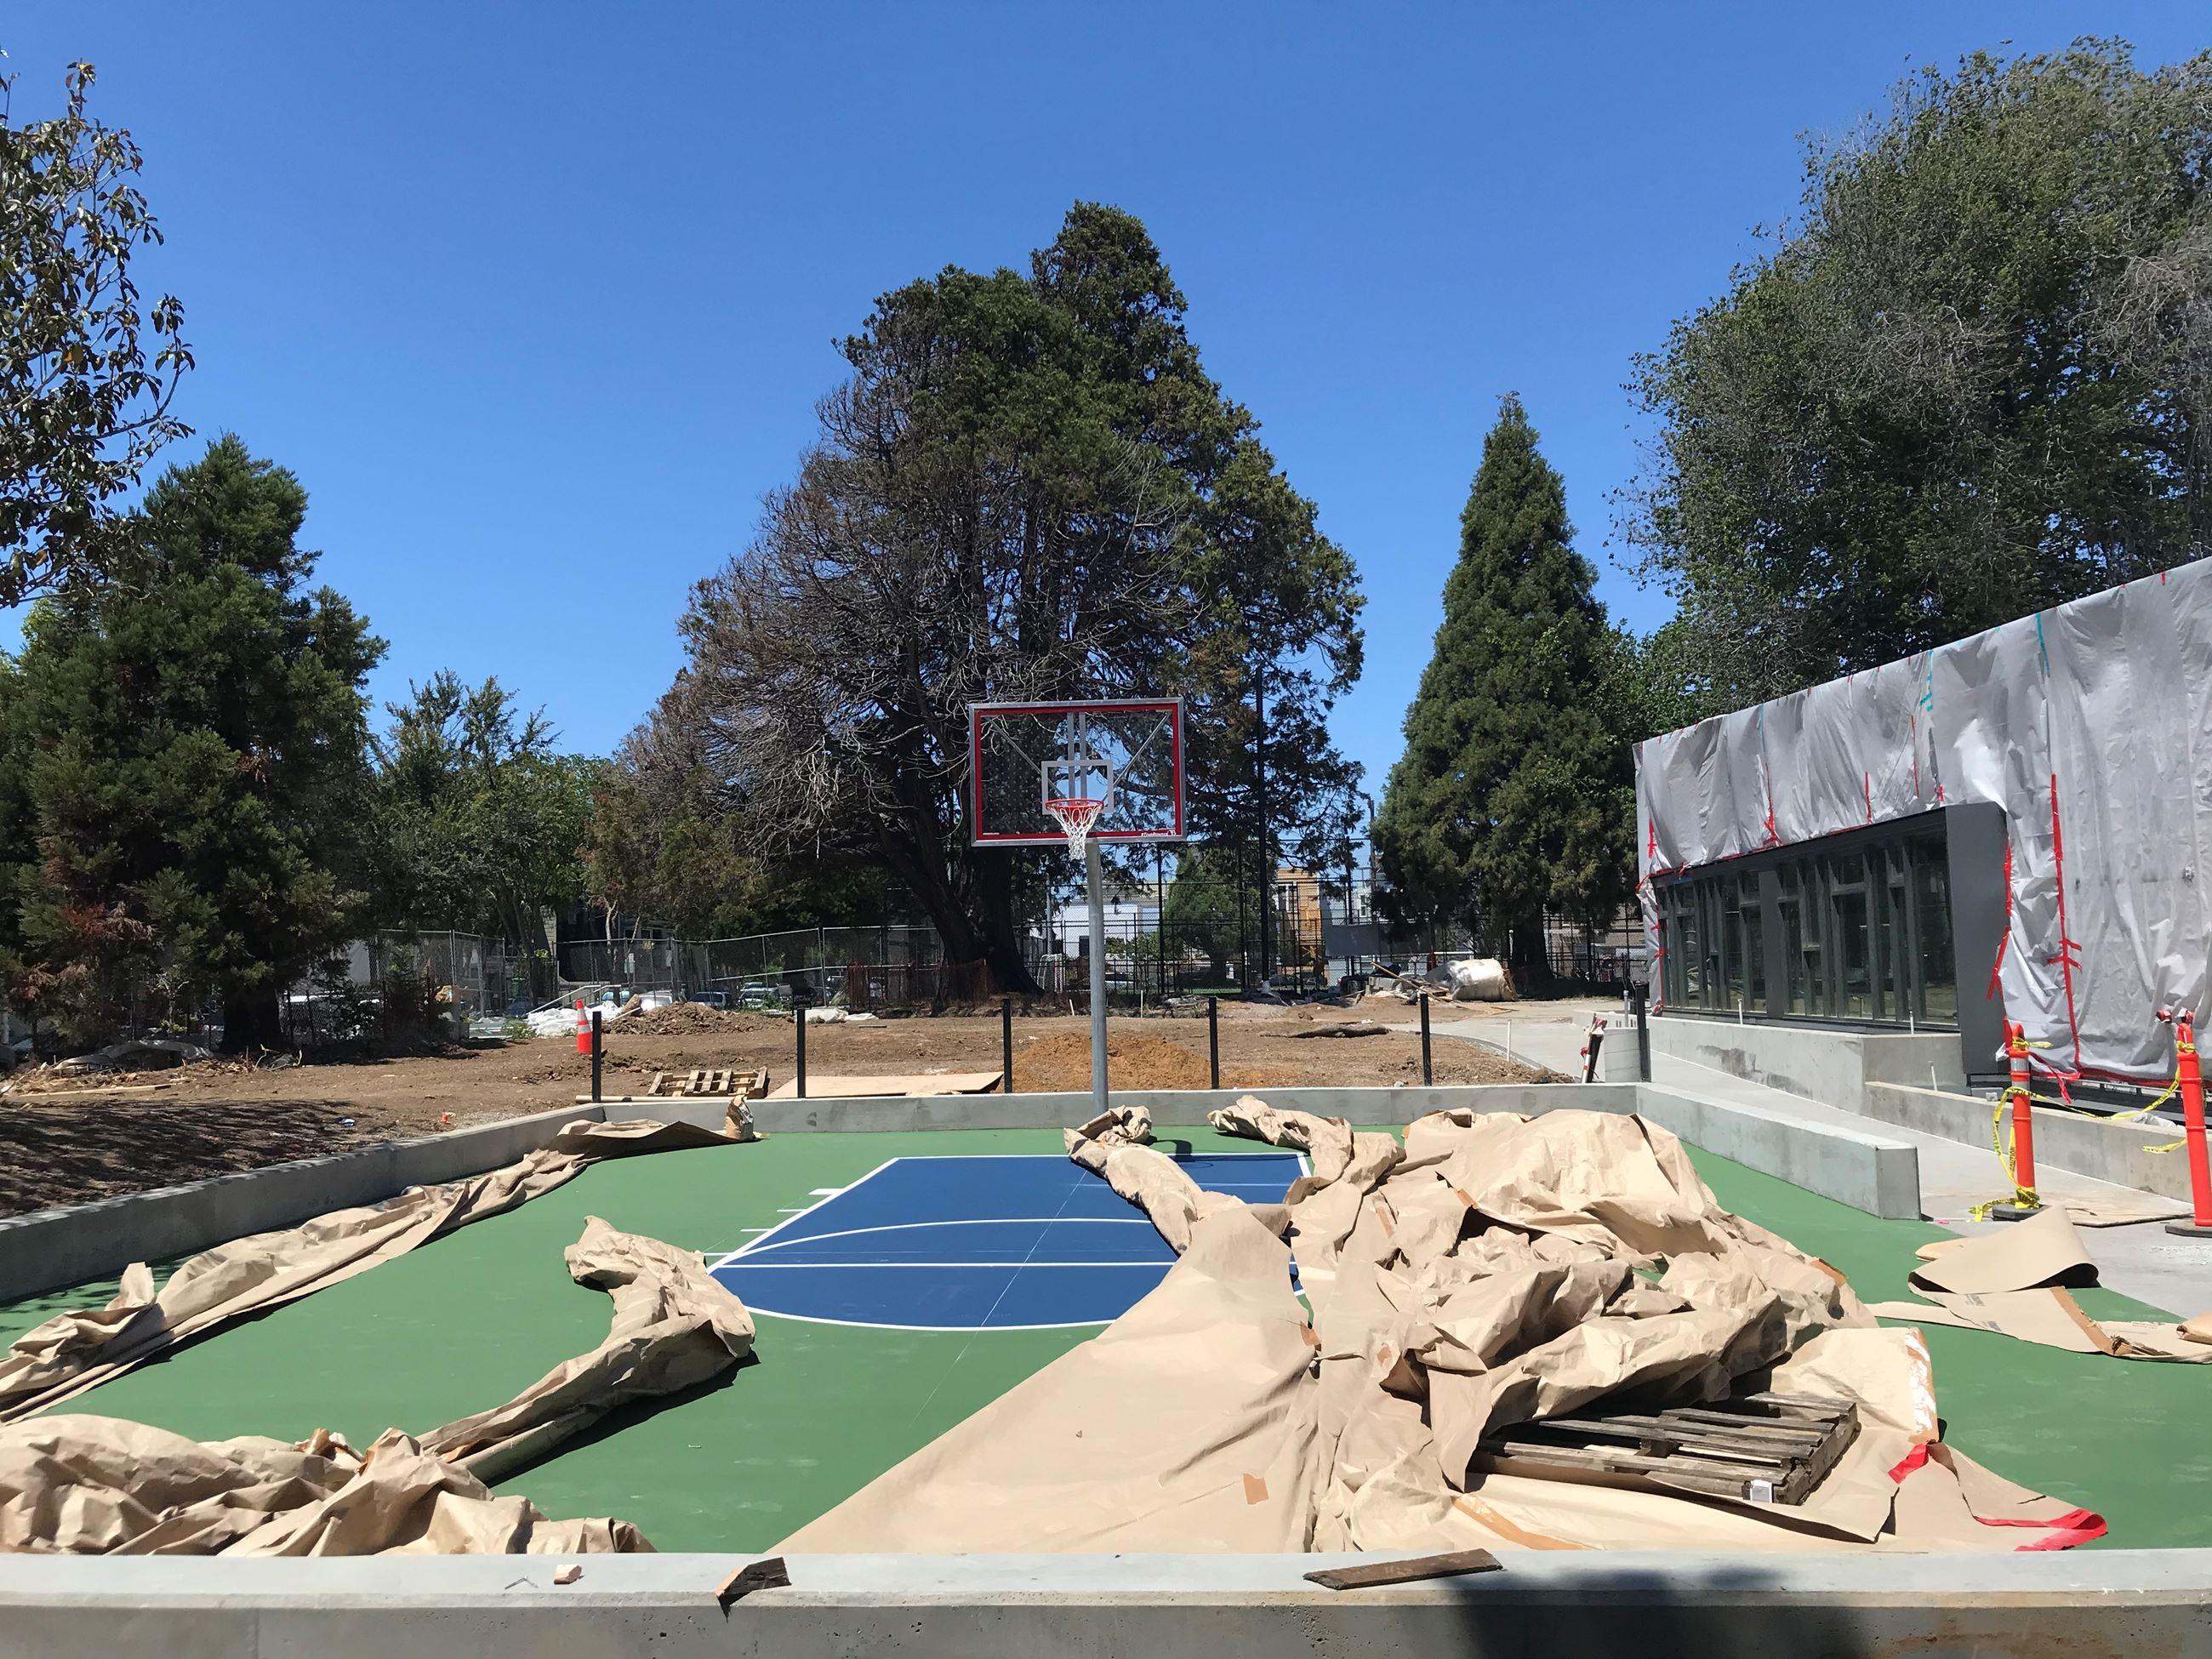 The photo shows a half basketball court in the middle, partially covered in brown construction paper